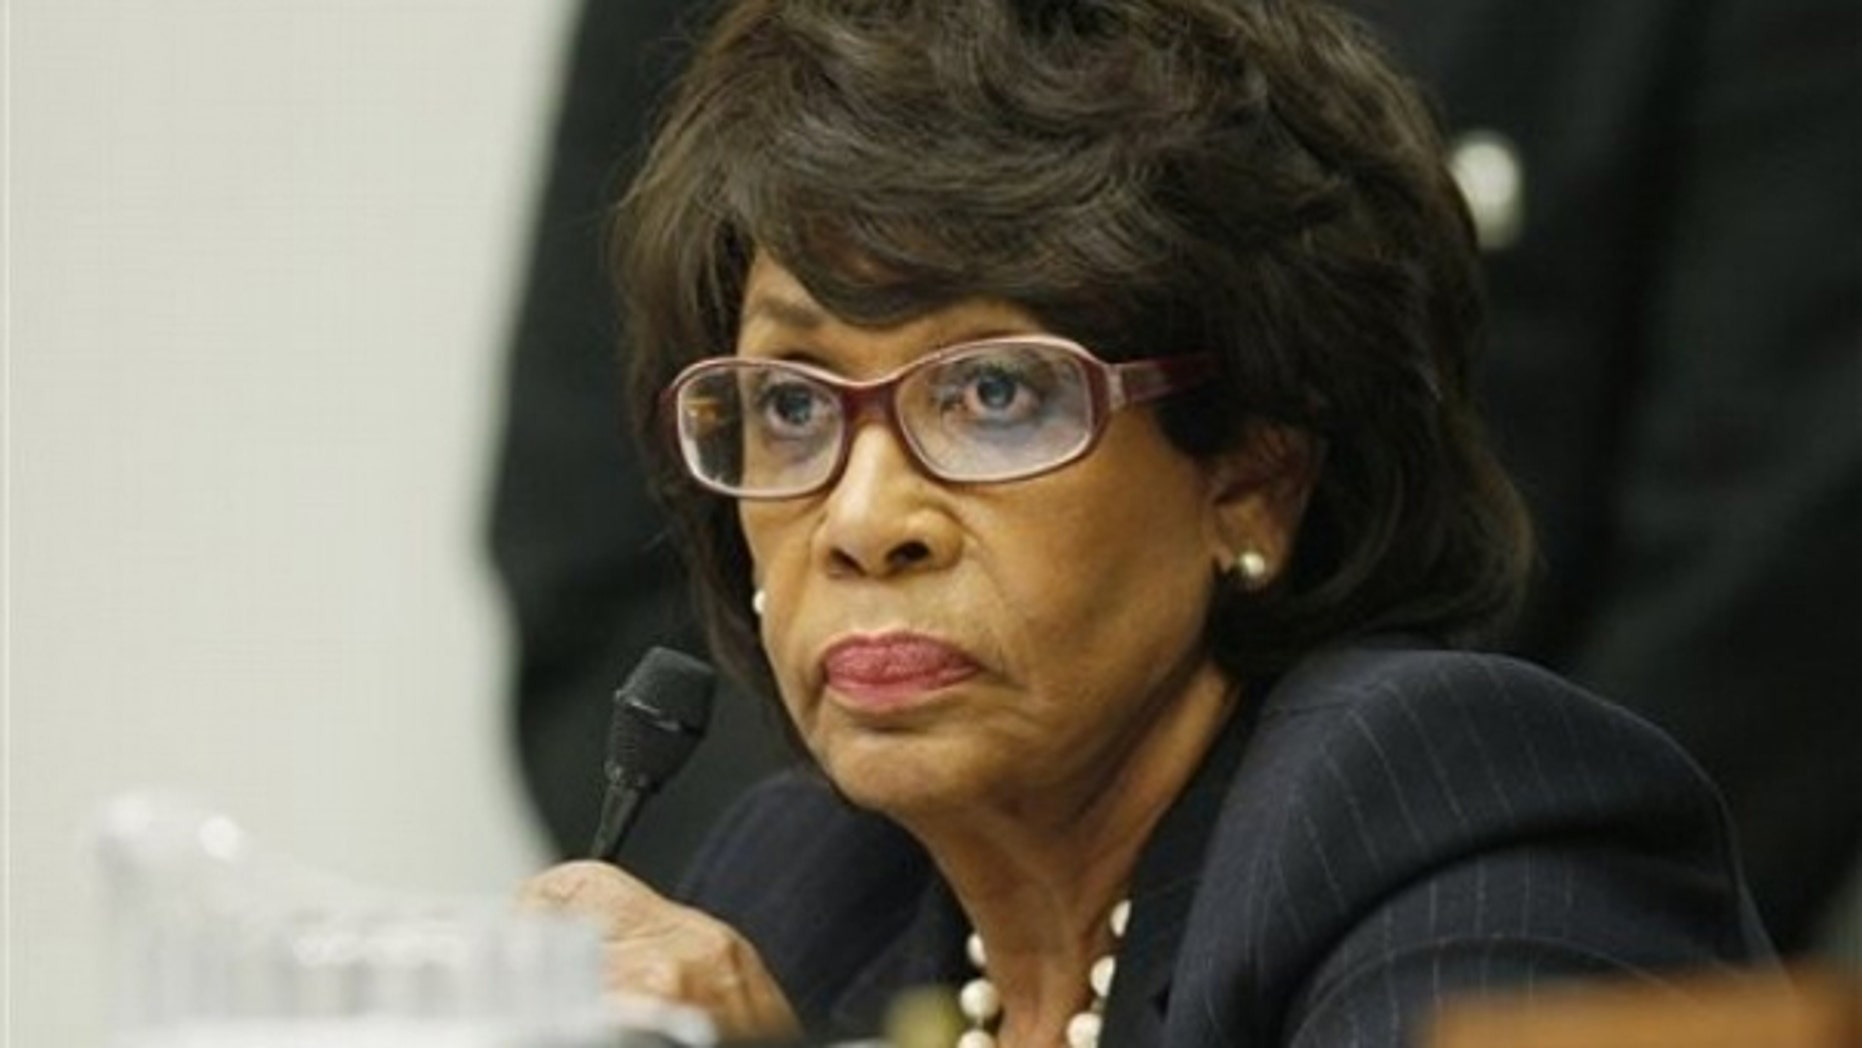 In this file photo, Rep. Maxine Waters is seen on Capitol Hill in Washington as she questions witnesses during a hearing on legal issues relating to football head injuries.